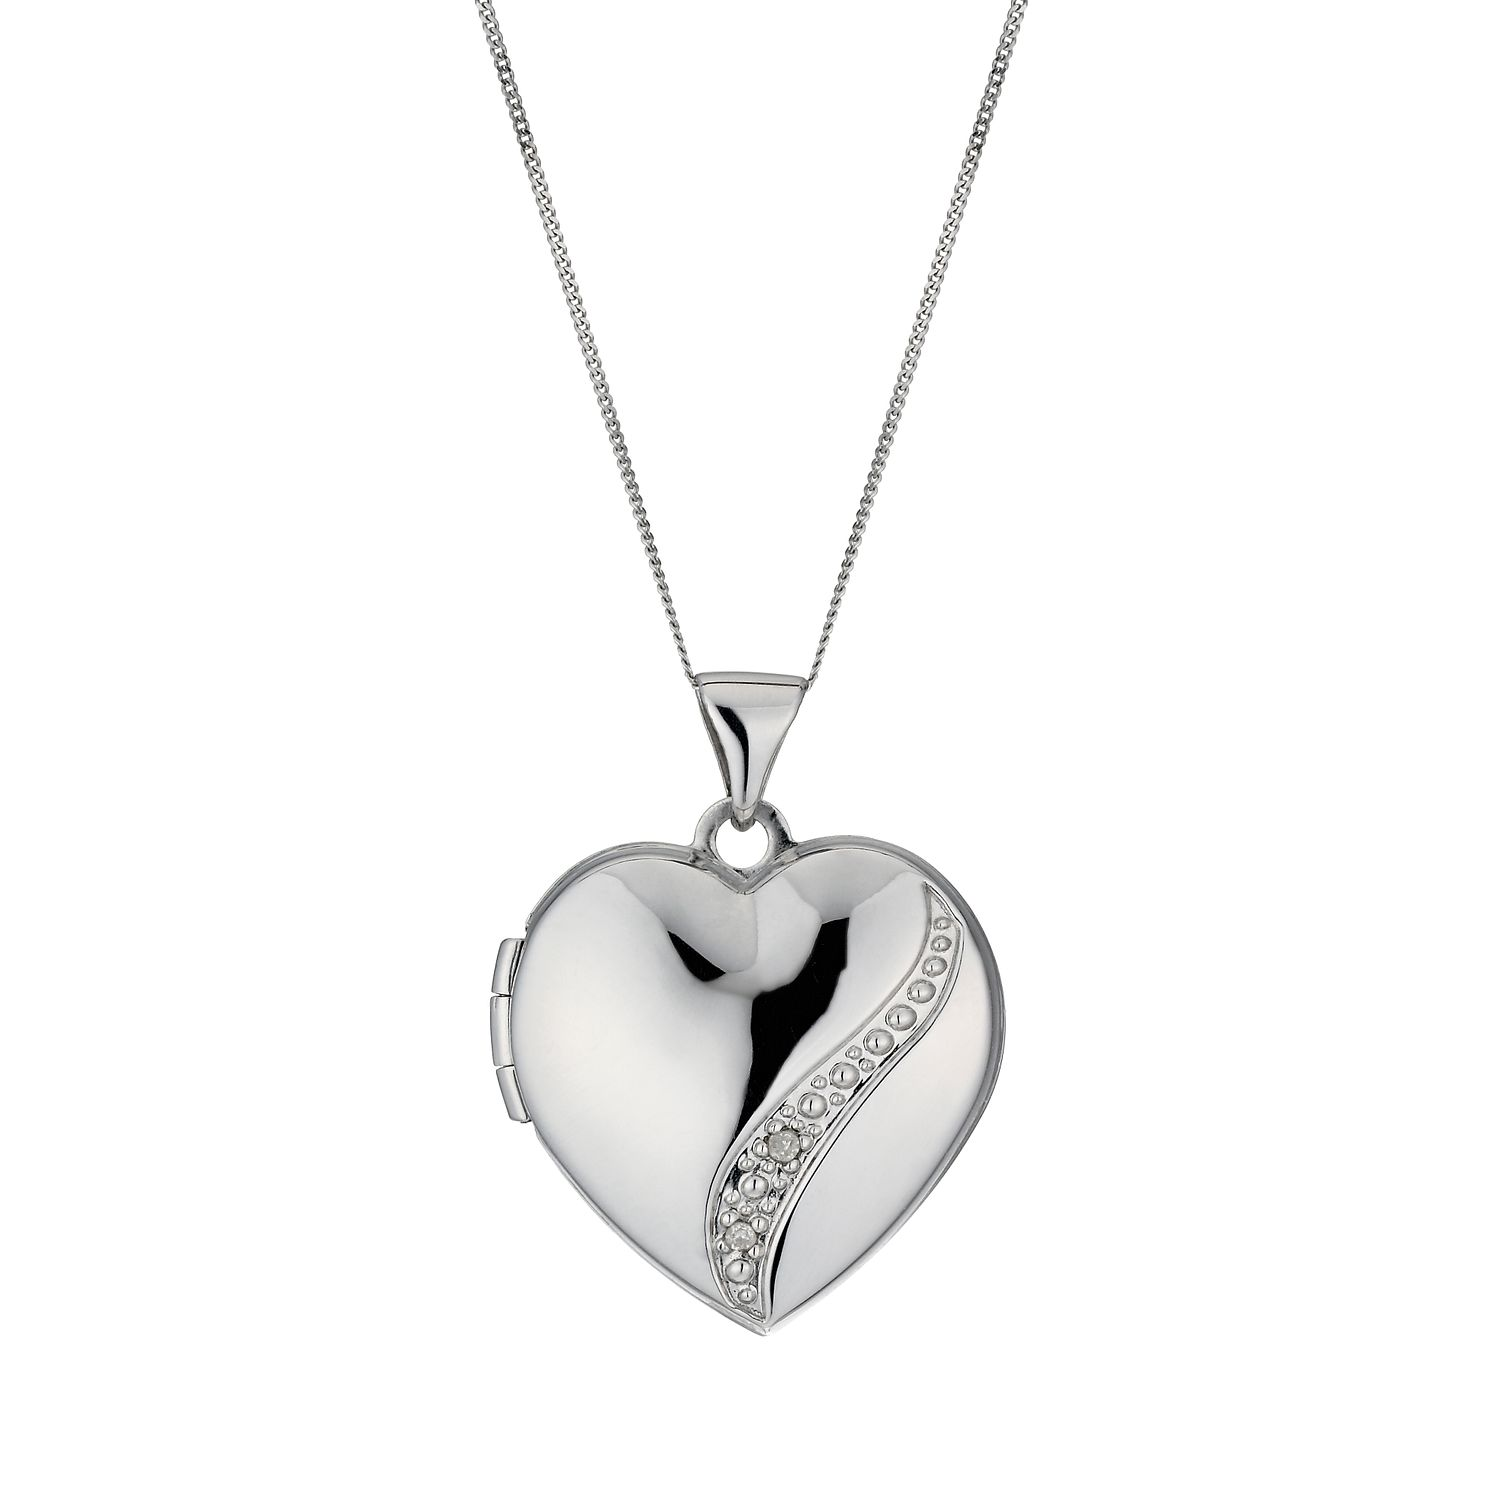 lockets simple the beaverbrooks large heart locket p gold white context pendant